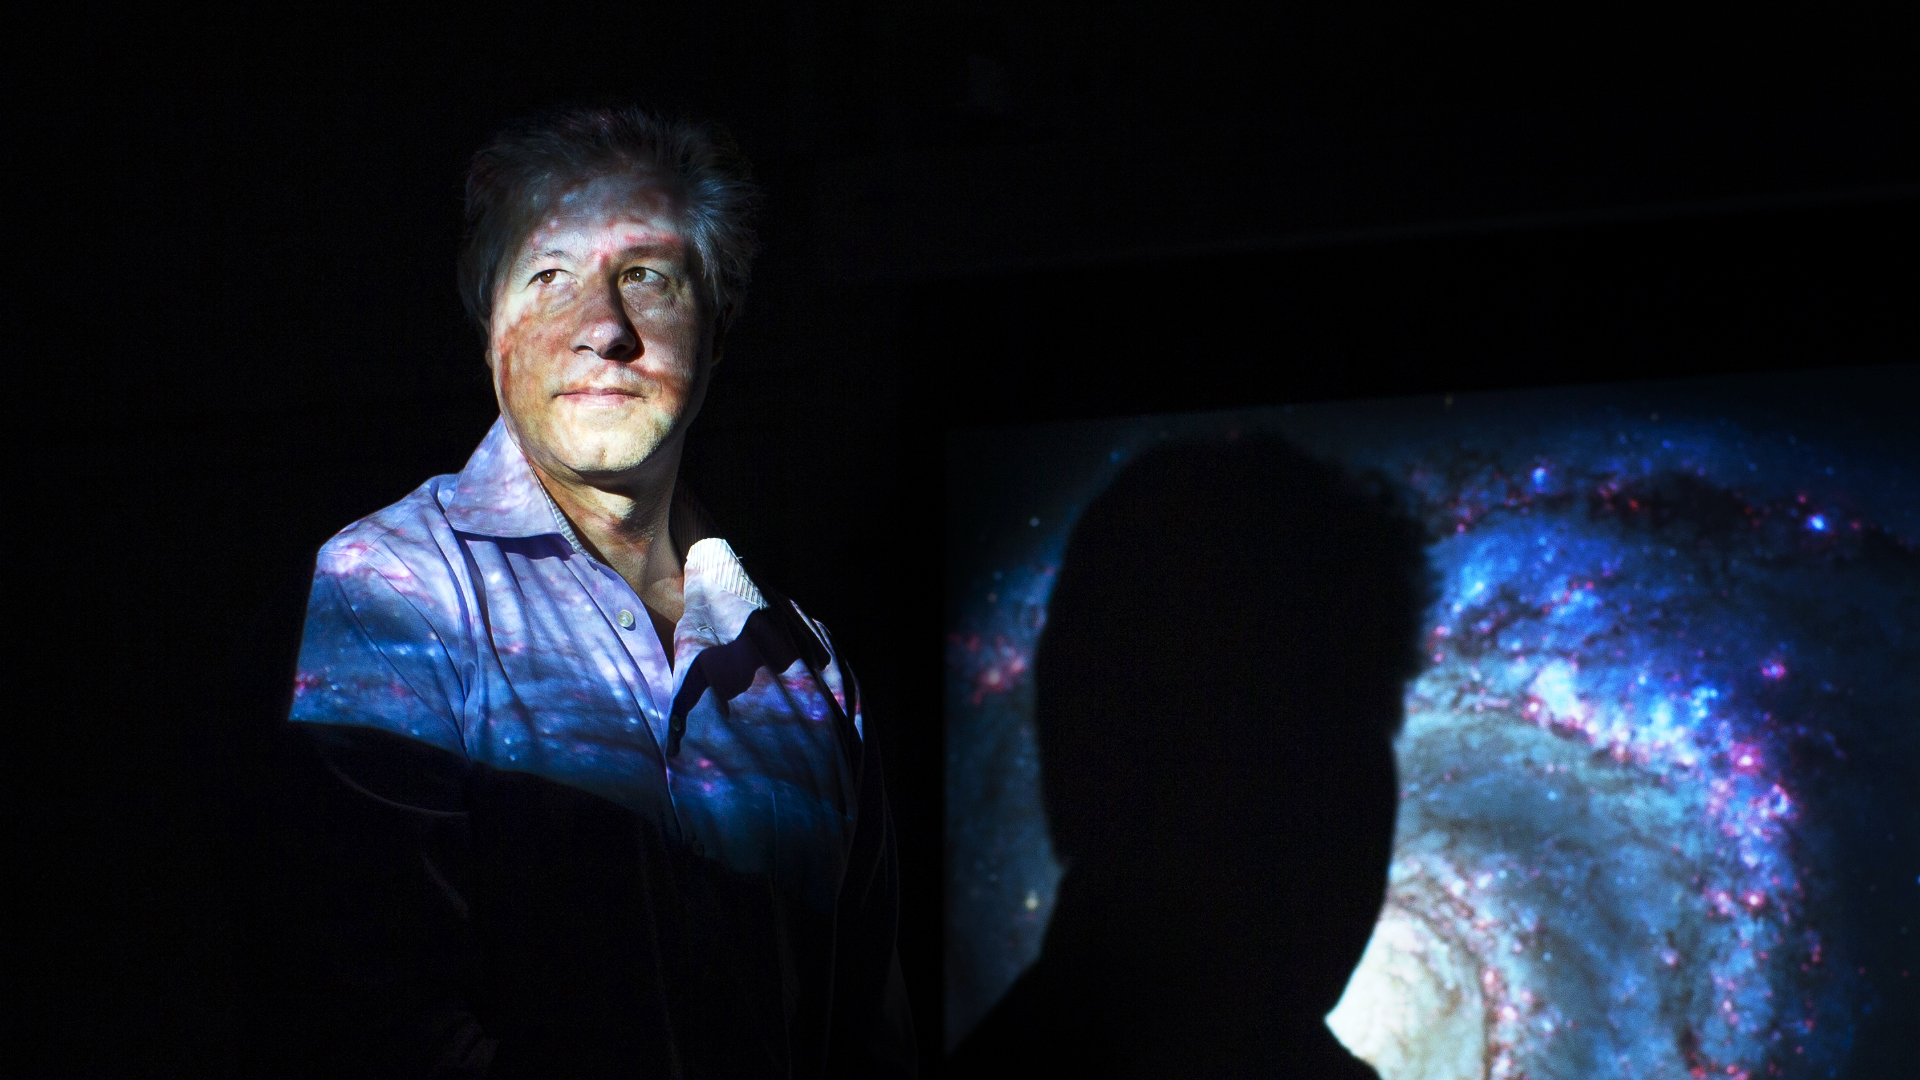 The Dutch theoretical physicist Erik Verlinde argues that dark matter does not exist.